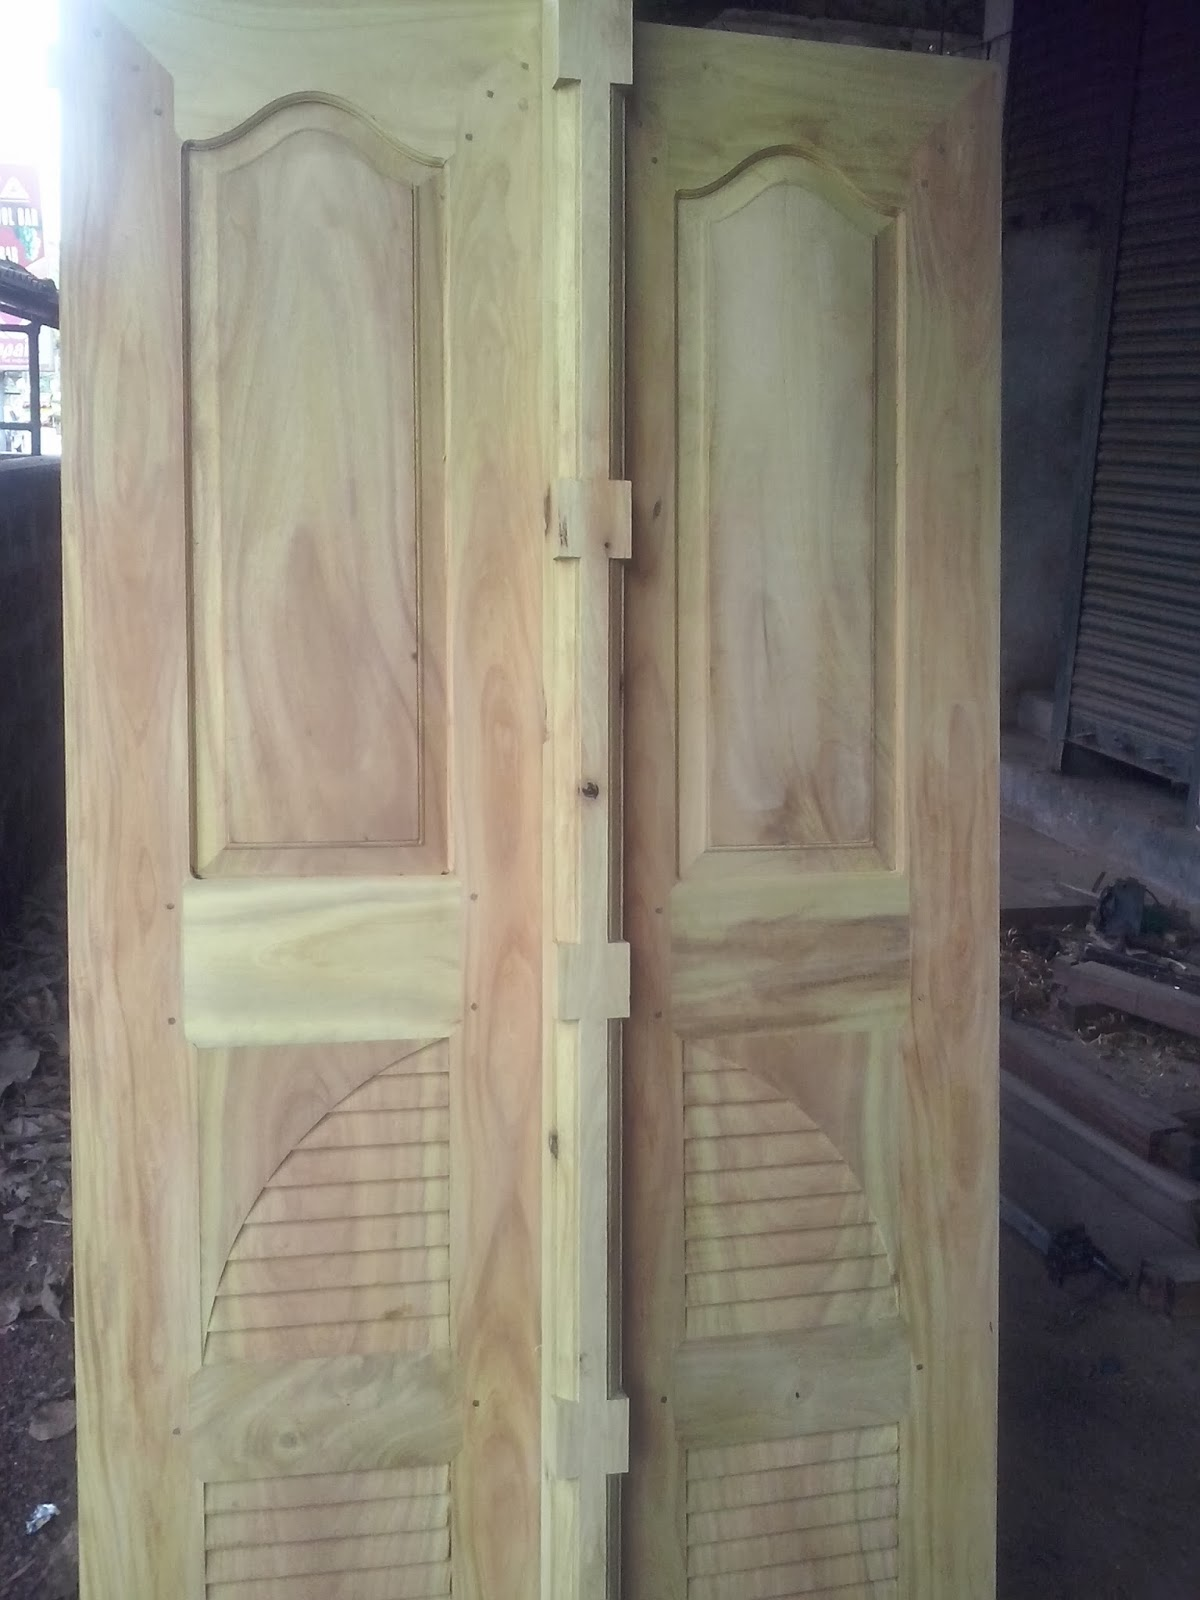 Bavas wood works main entrance wooden double door designs for Main entrance double door design